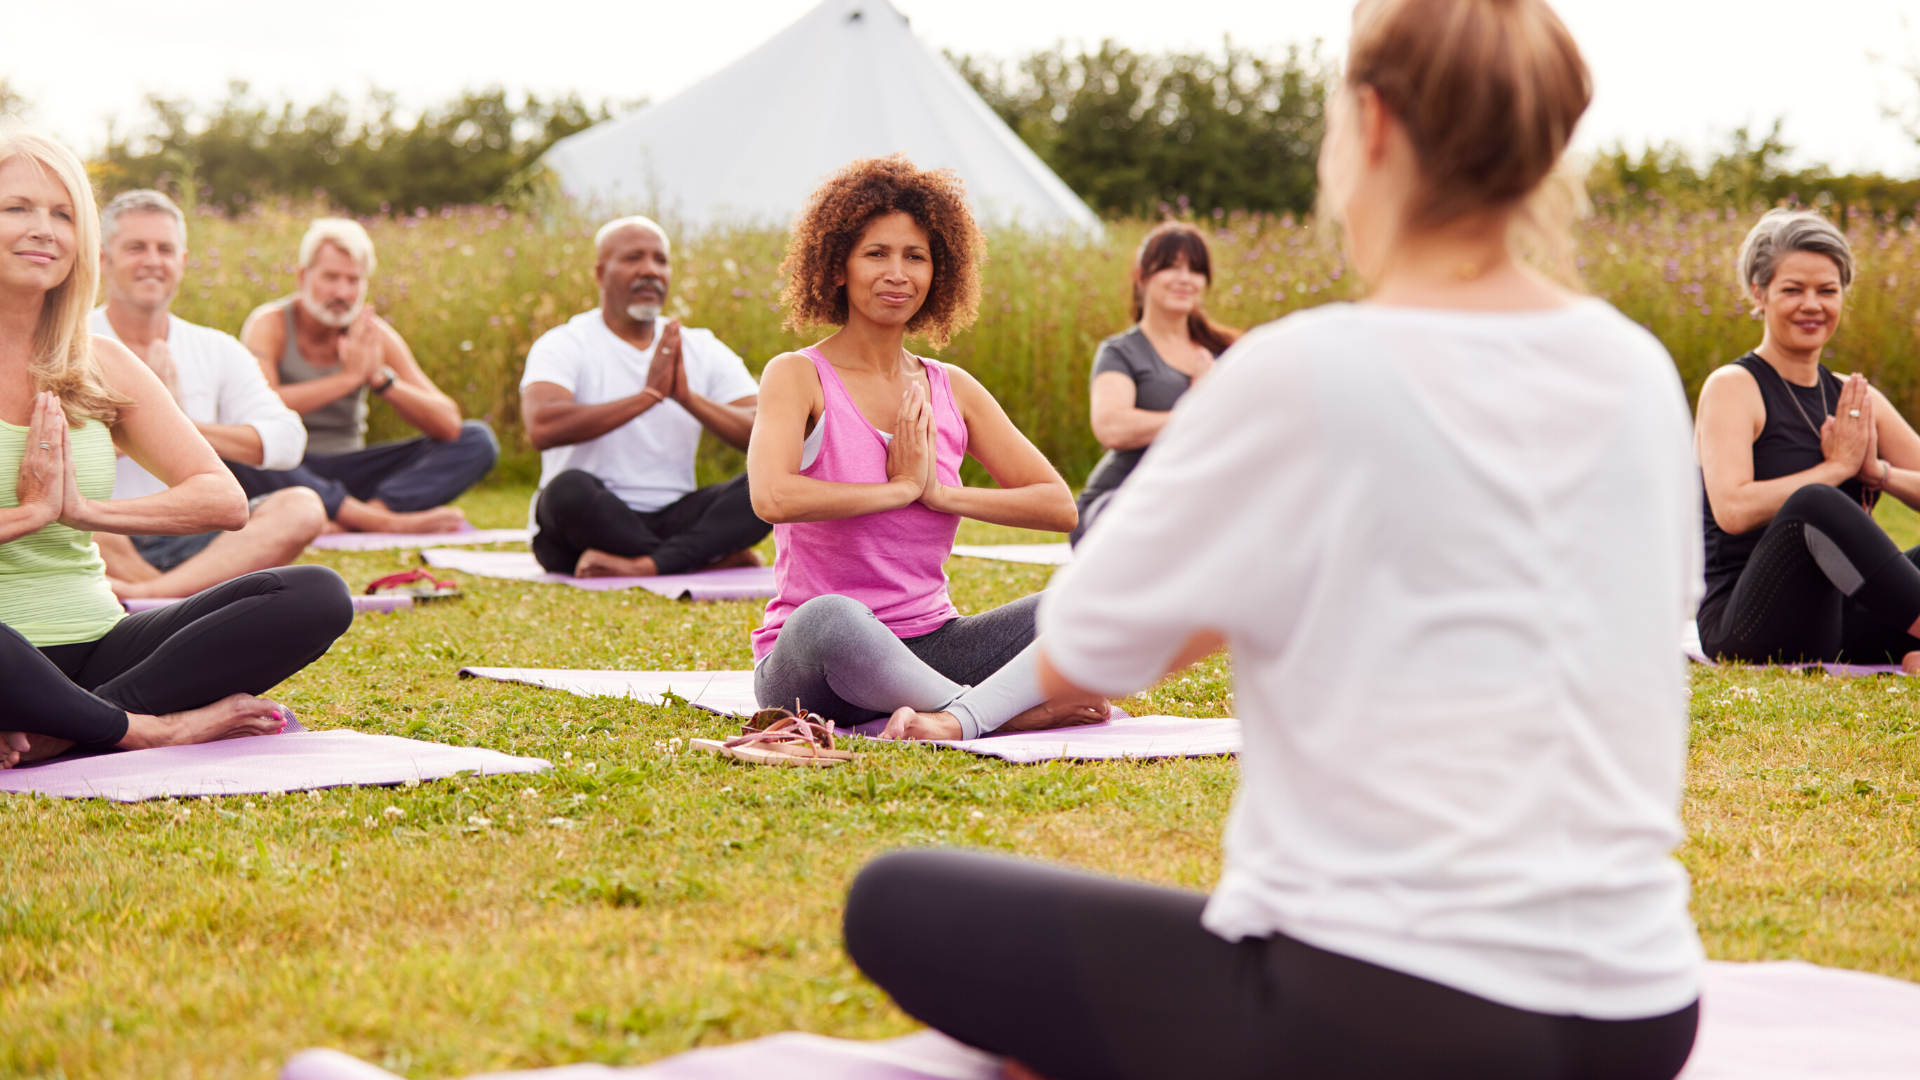 group of middle-aged yoga students practicing yoga outdoors.